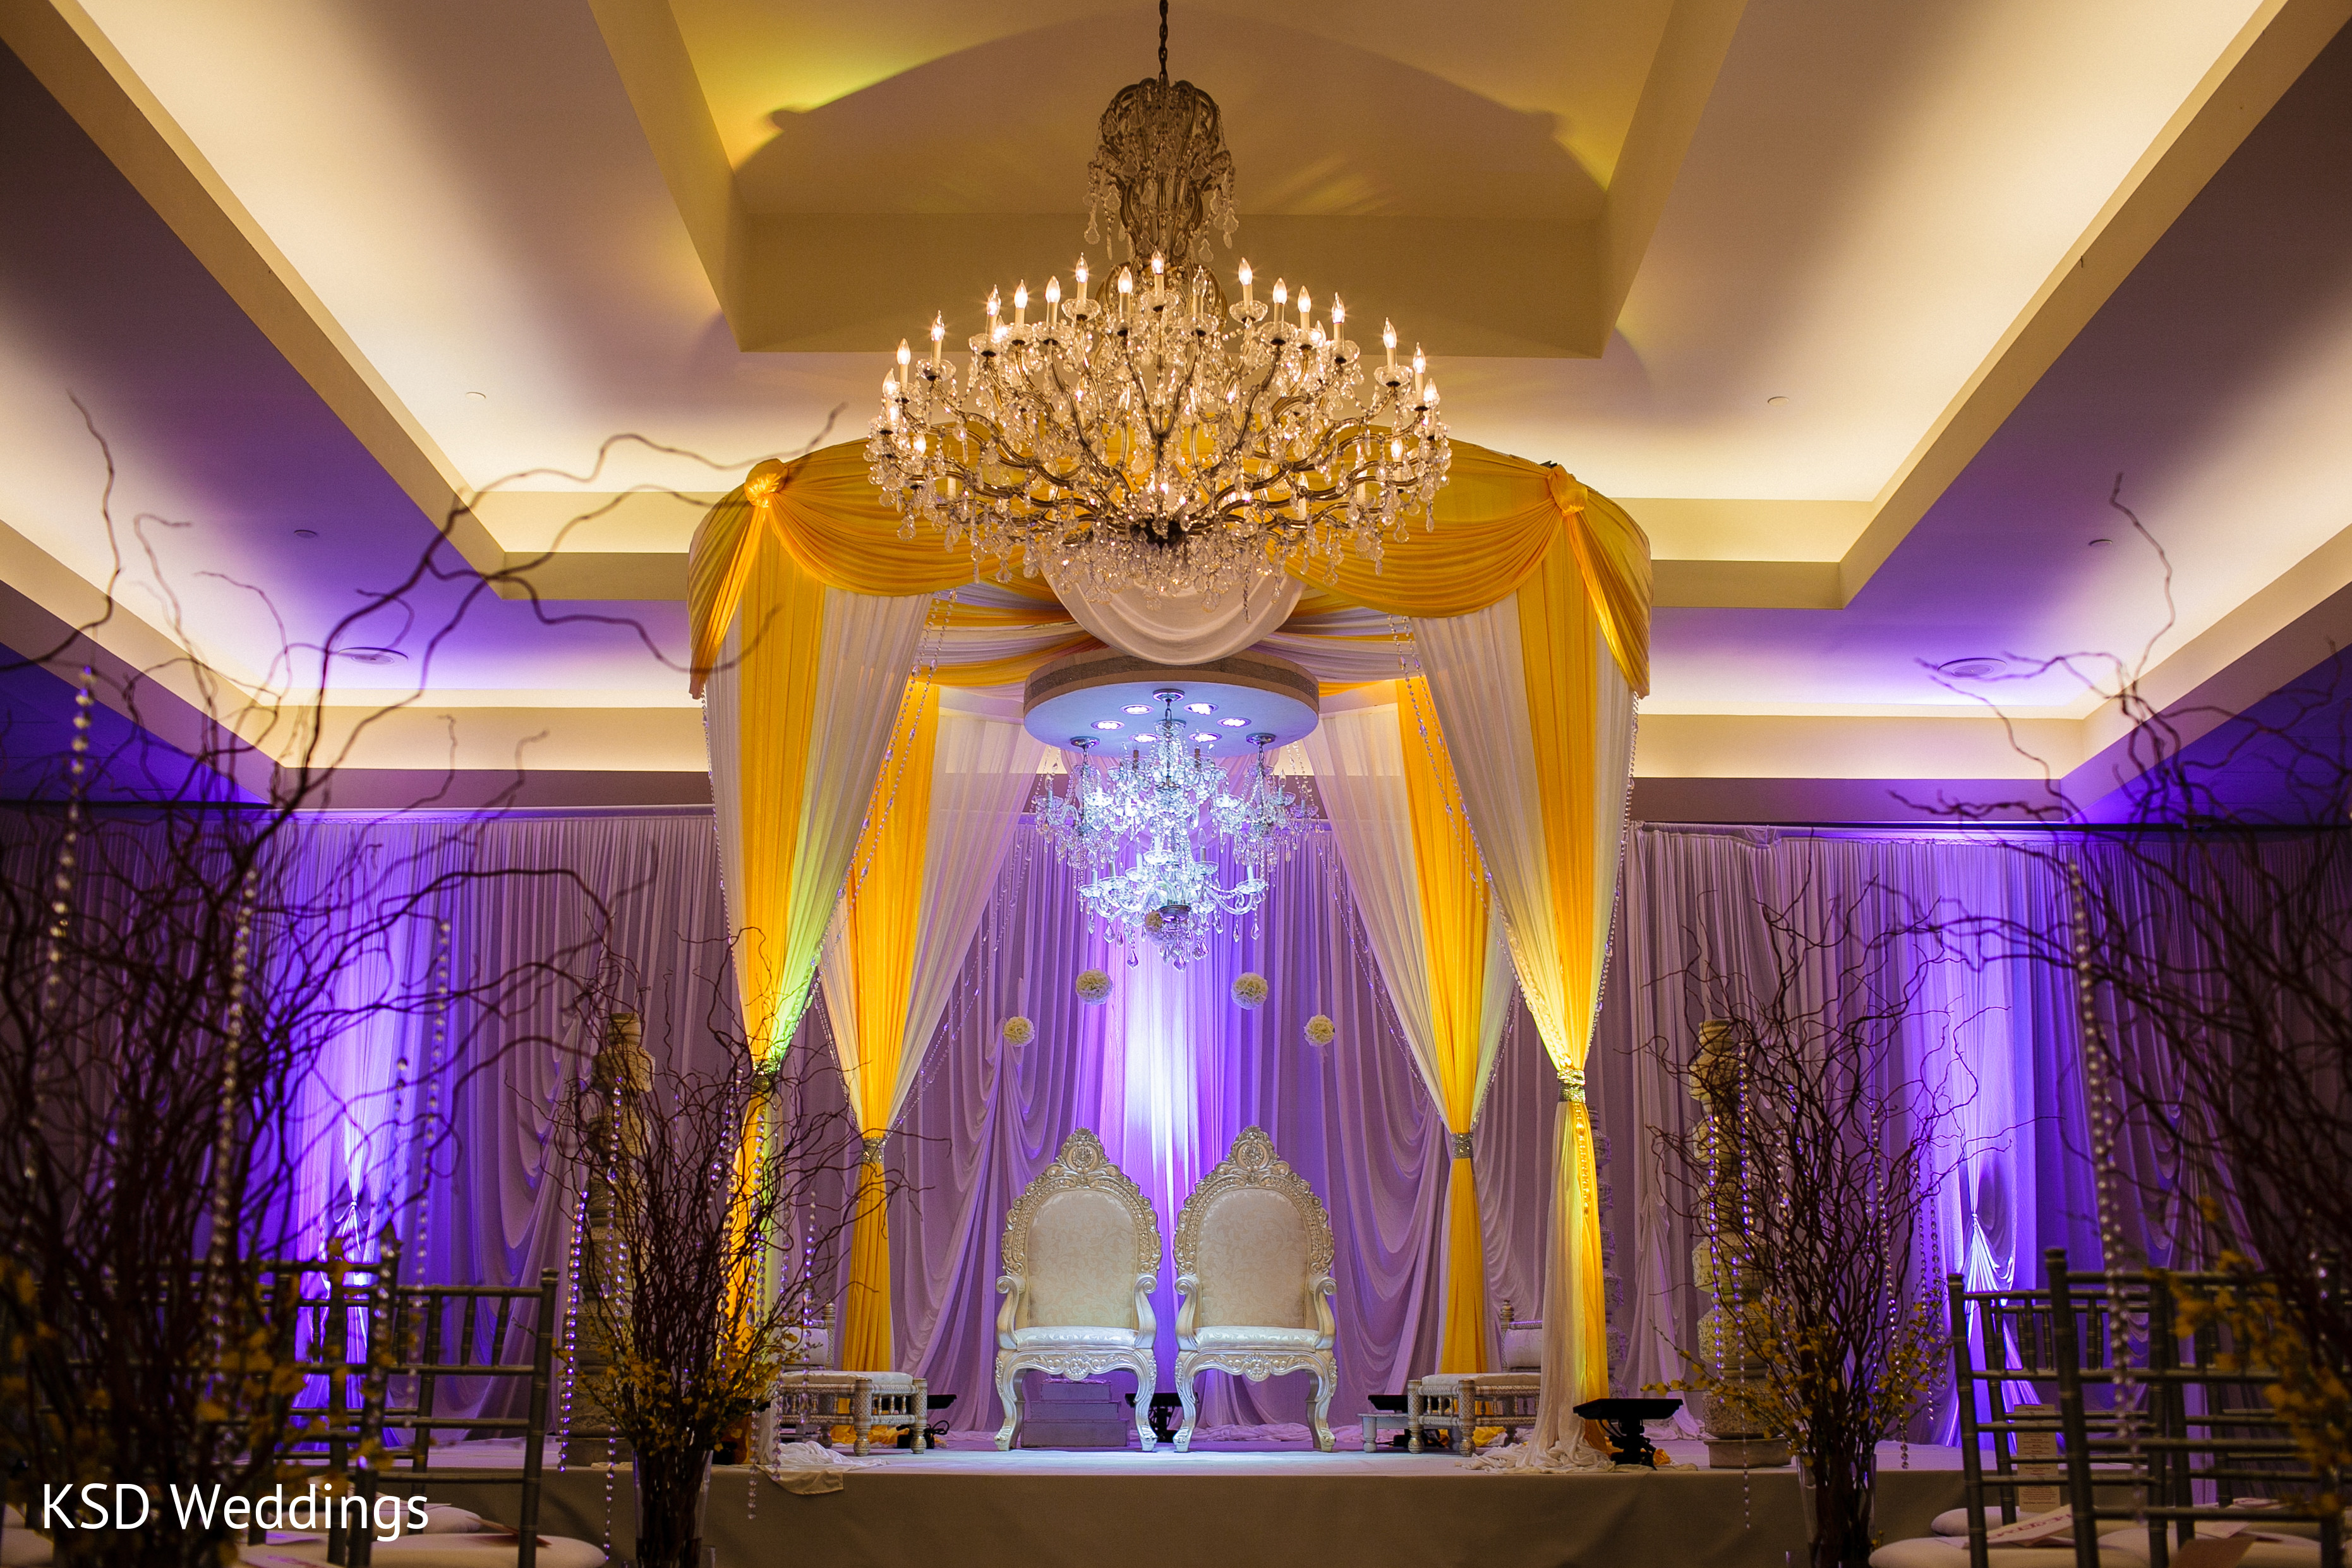 Parsippany nj indian fusion wedding by ksd weddings maharani parsippany nj indian fusion wedding by ksd weddings maharani weddings junglespirit Images